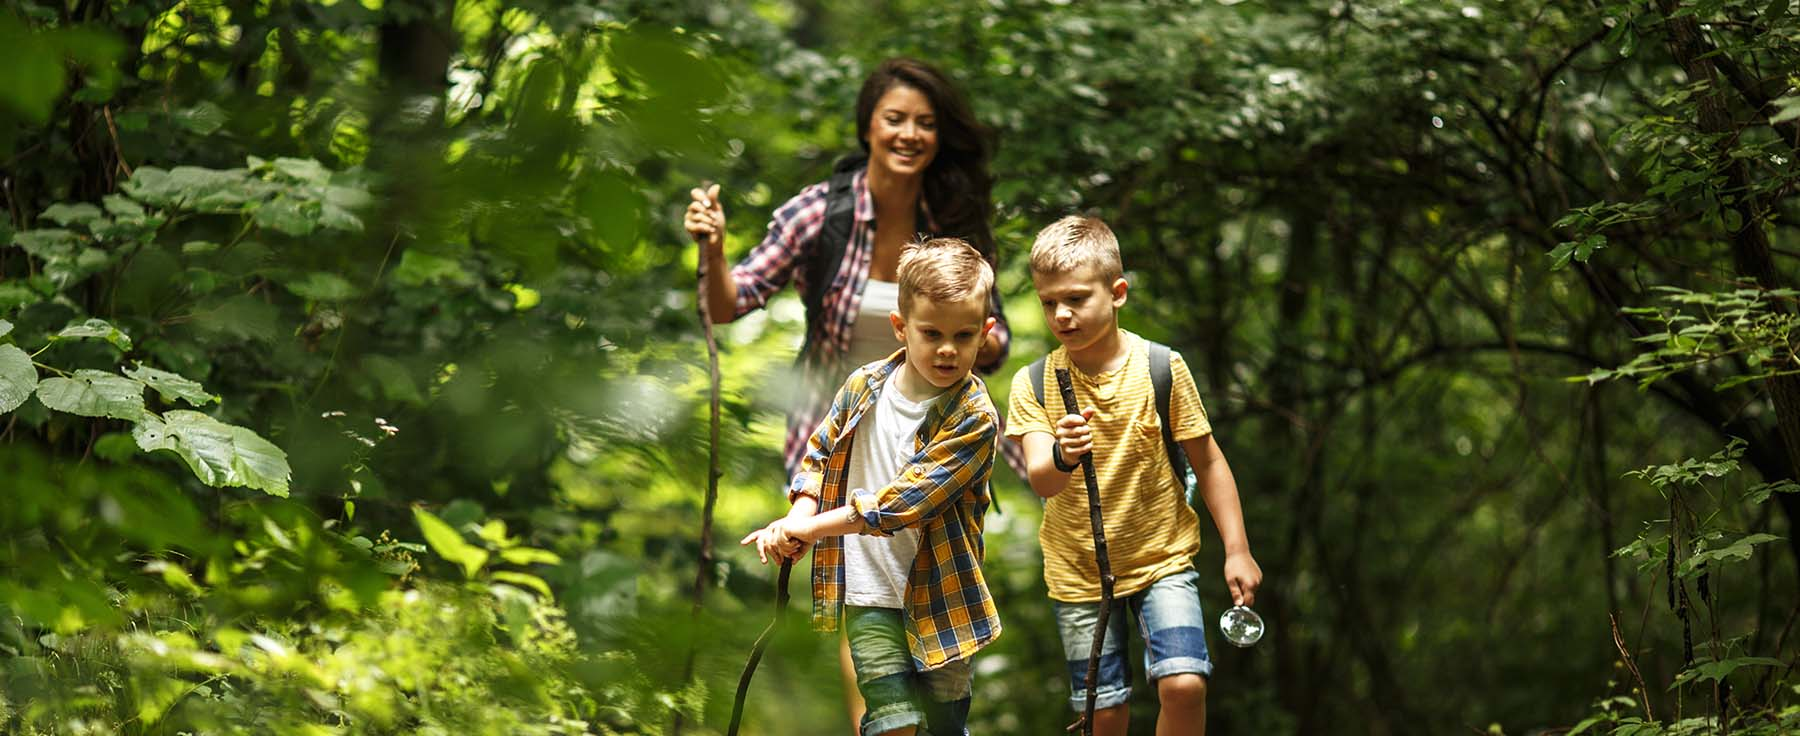 Mum going on a trek with her two kids | The Companionist